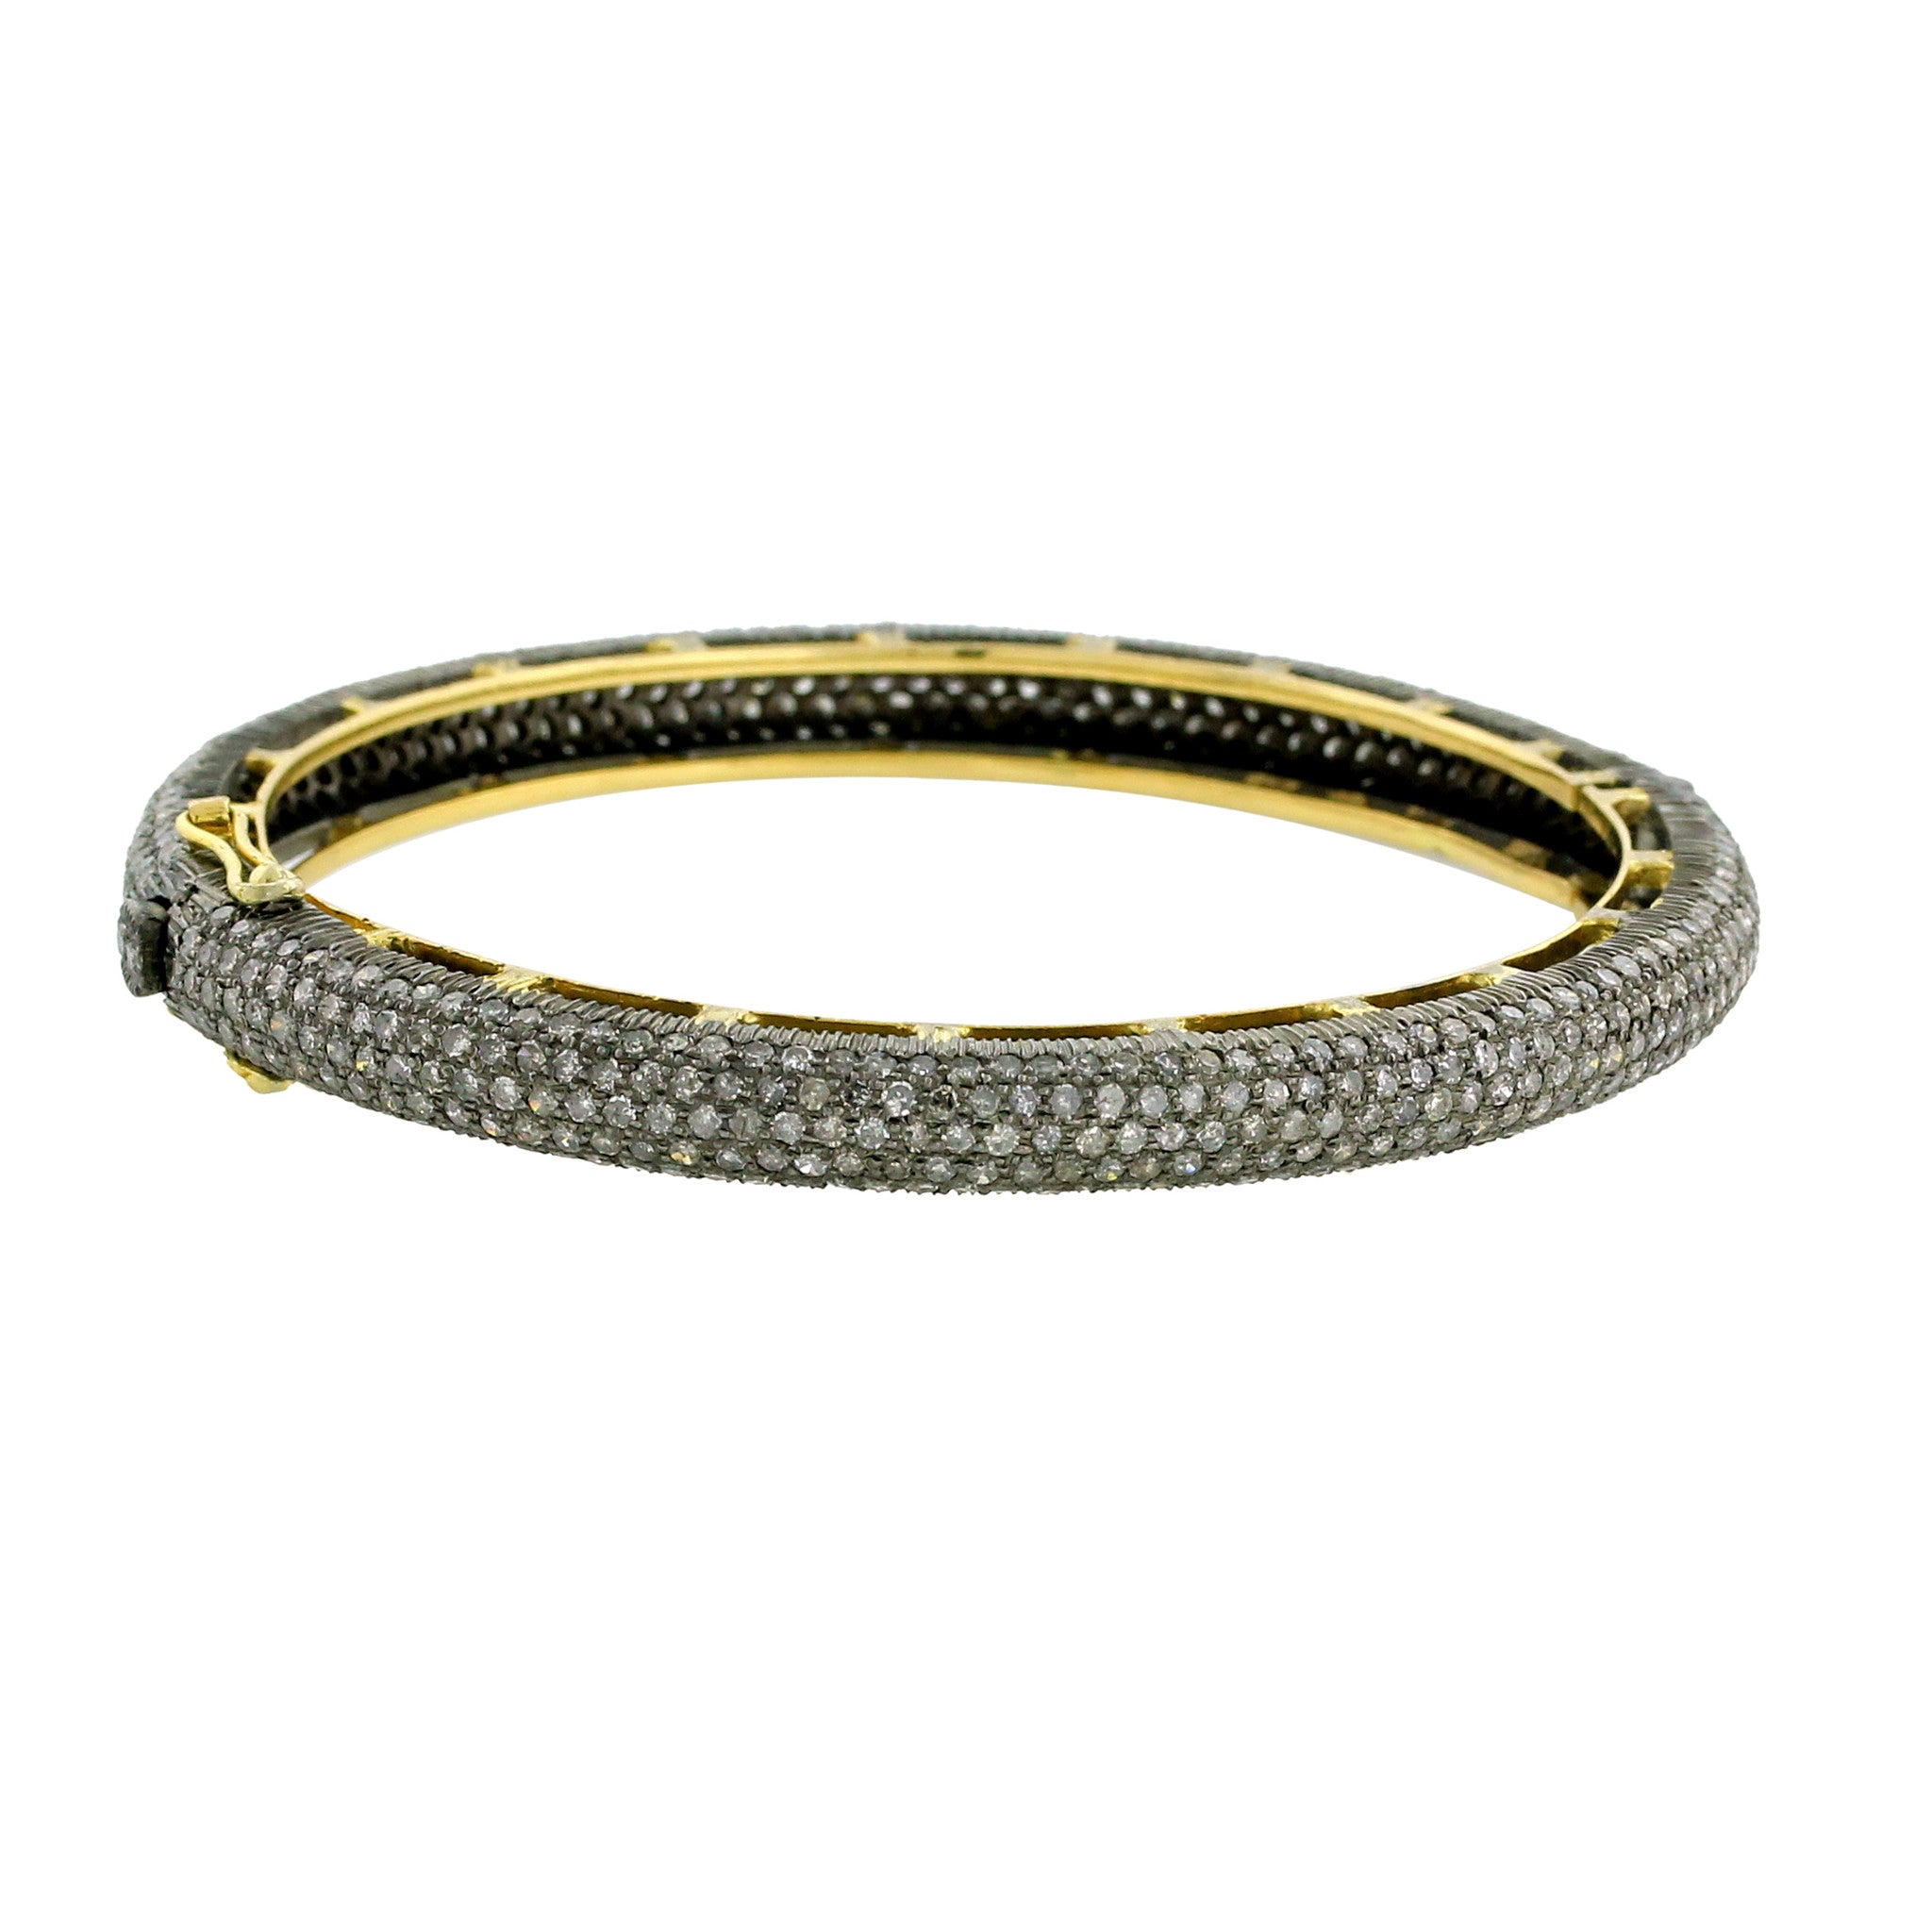 jewellery from zoom bracelets jon silver pave bangle geometric uk bangles richard